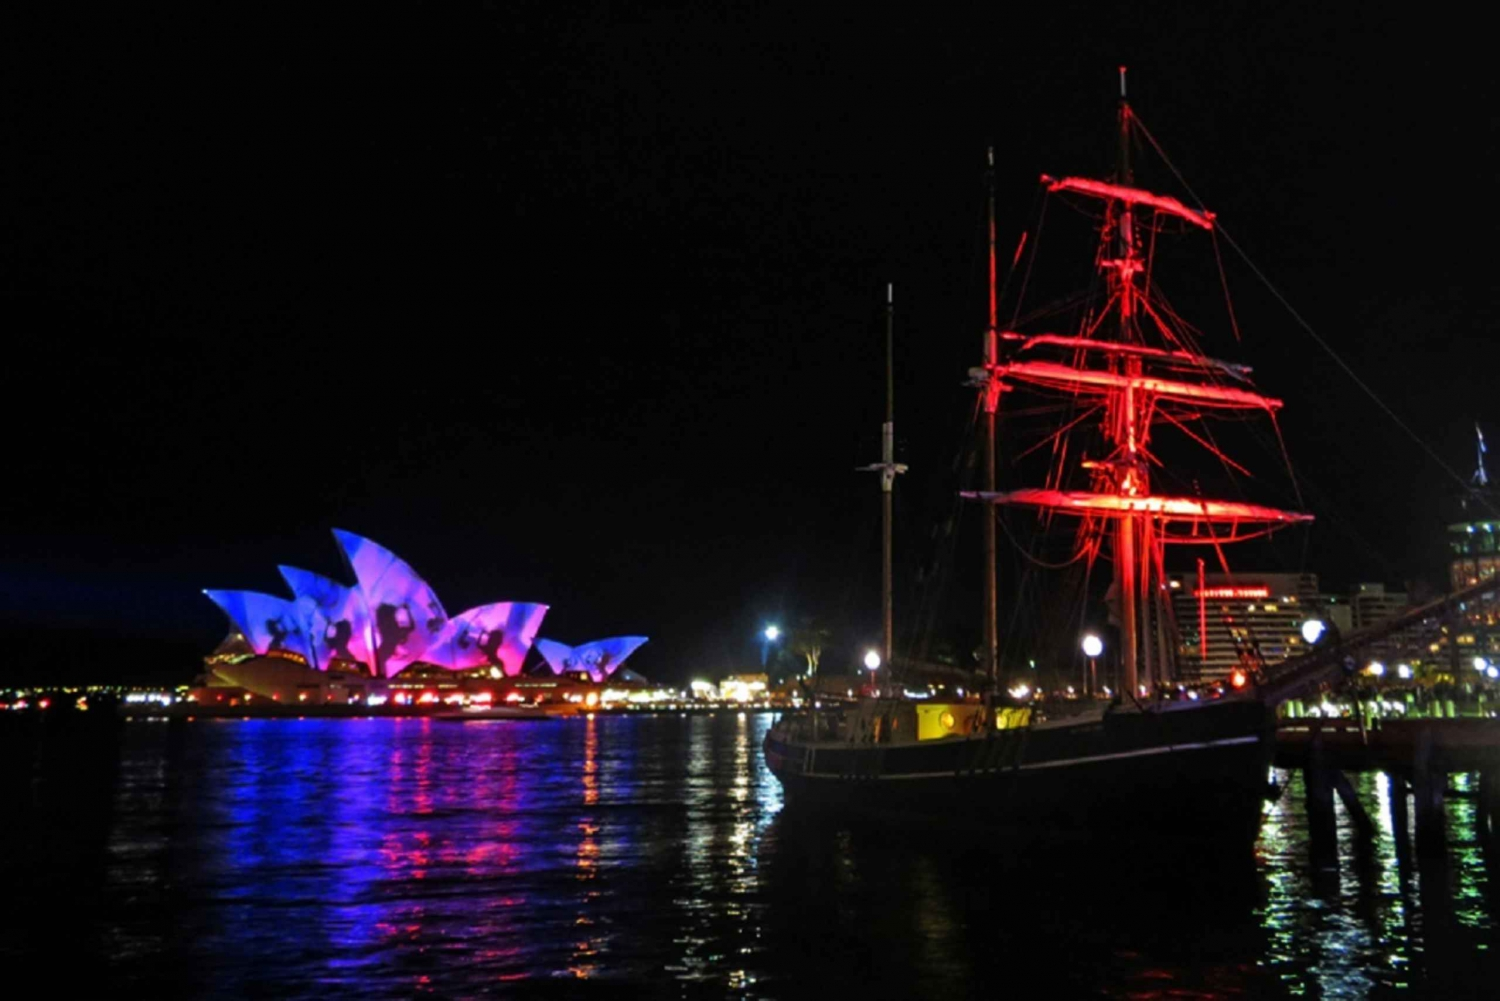 Sydney Harbour: Tall Ship Vivid Dinner Cruise